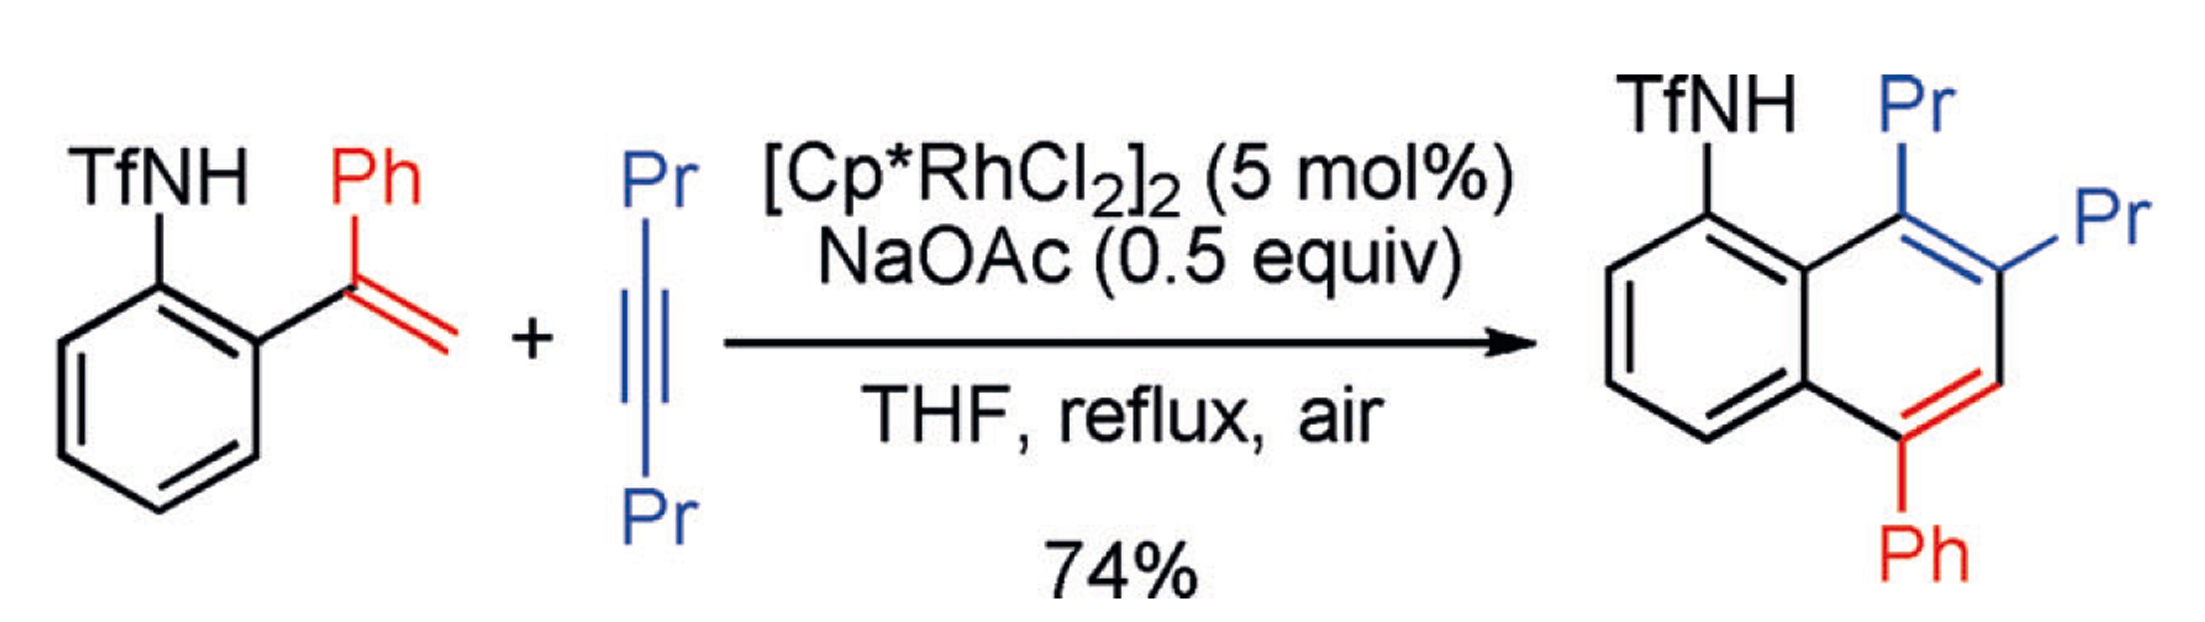 Rhodium‐catalyzed annulation of ortho‐alkenylanilides with alkynes: Formation of unexpected naphthalene adducts